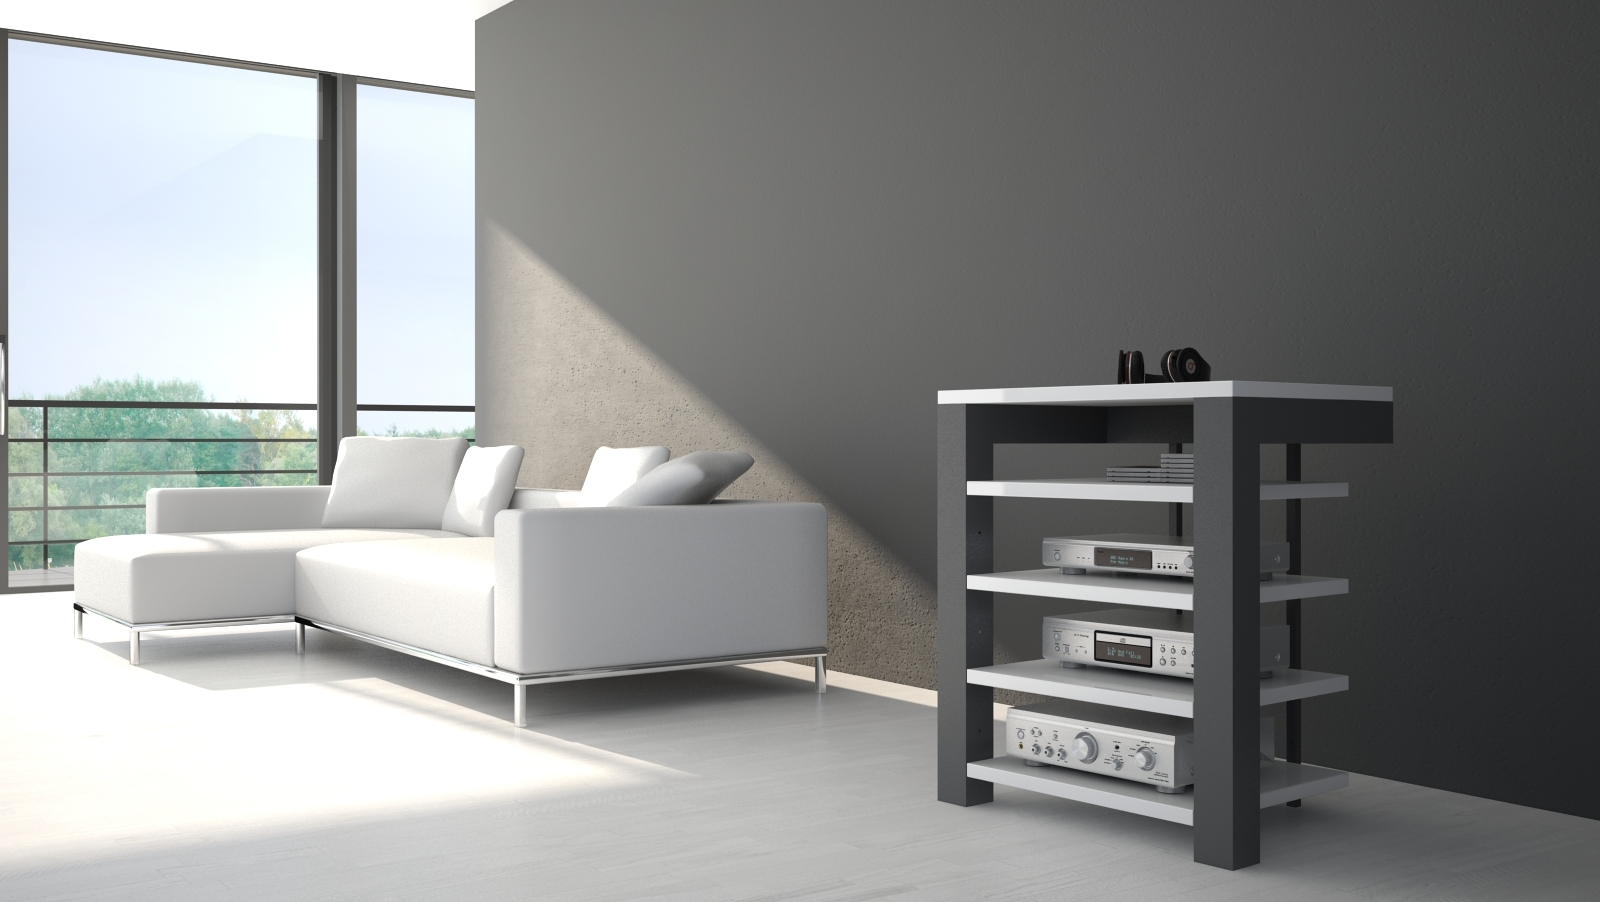 focus 72 schroers schroers berlin tv m bel und audio m bel. Black Bedroom Furniture Sets. Home Design Ideas